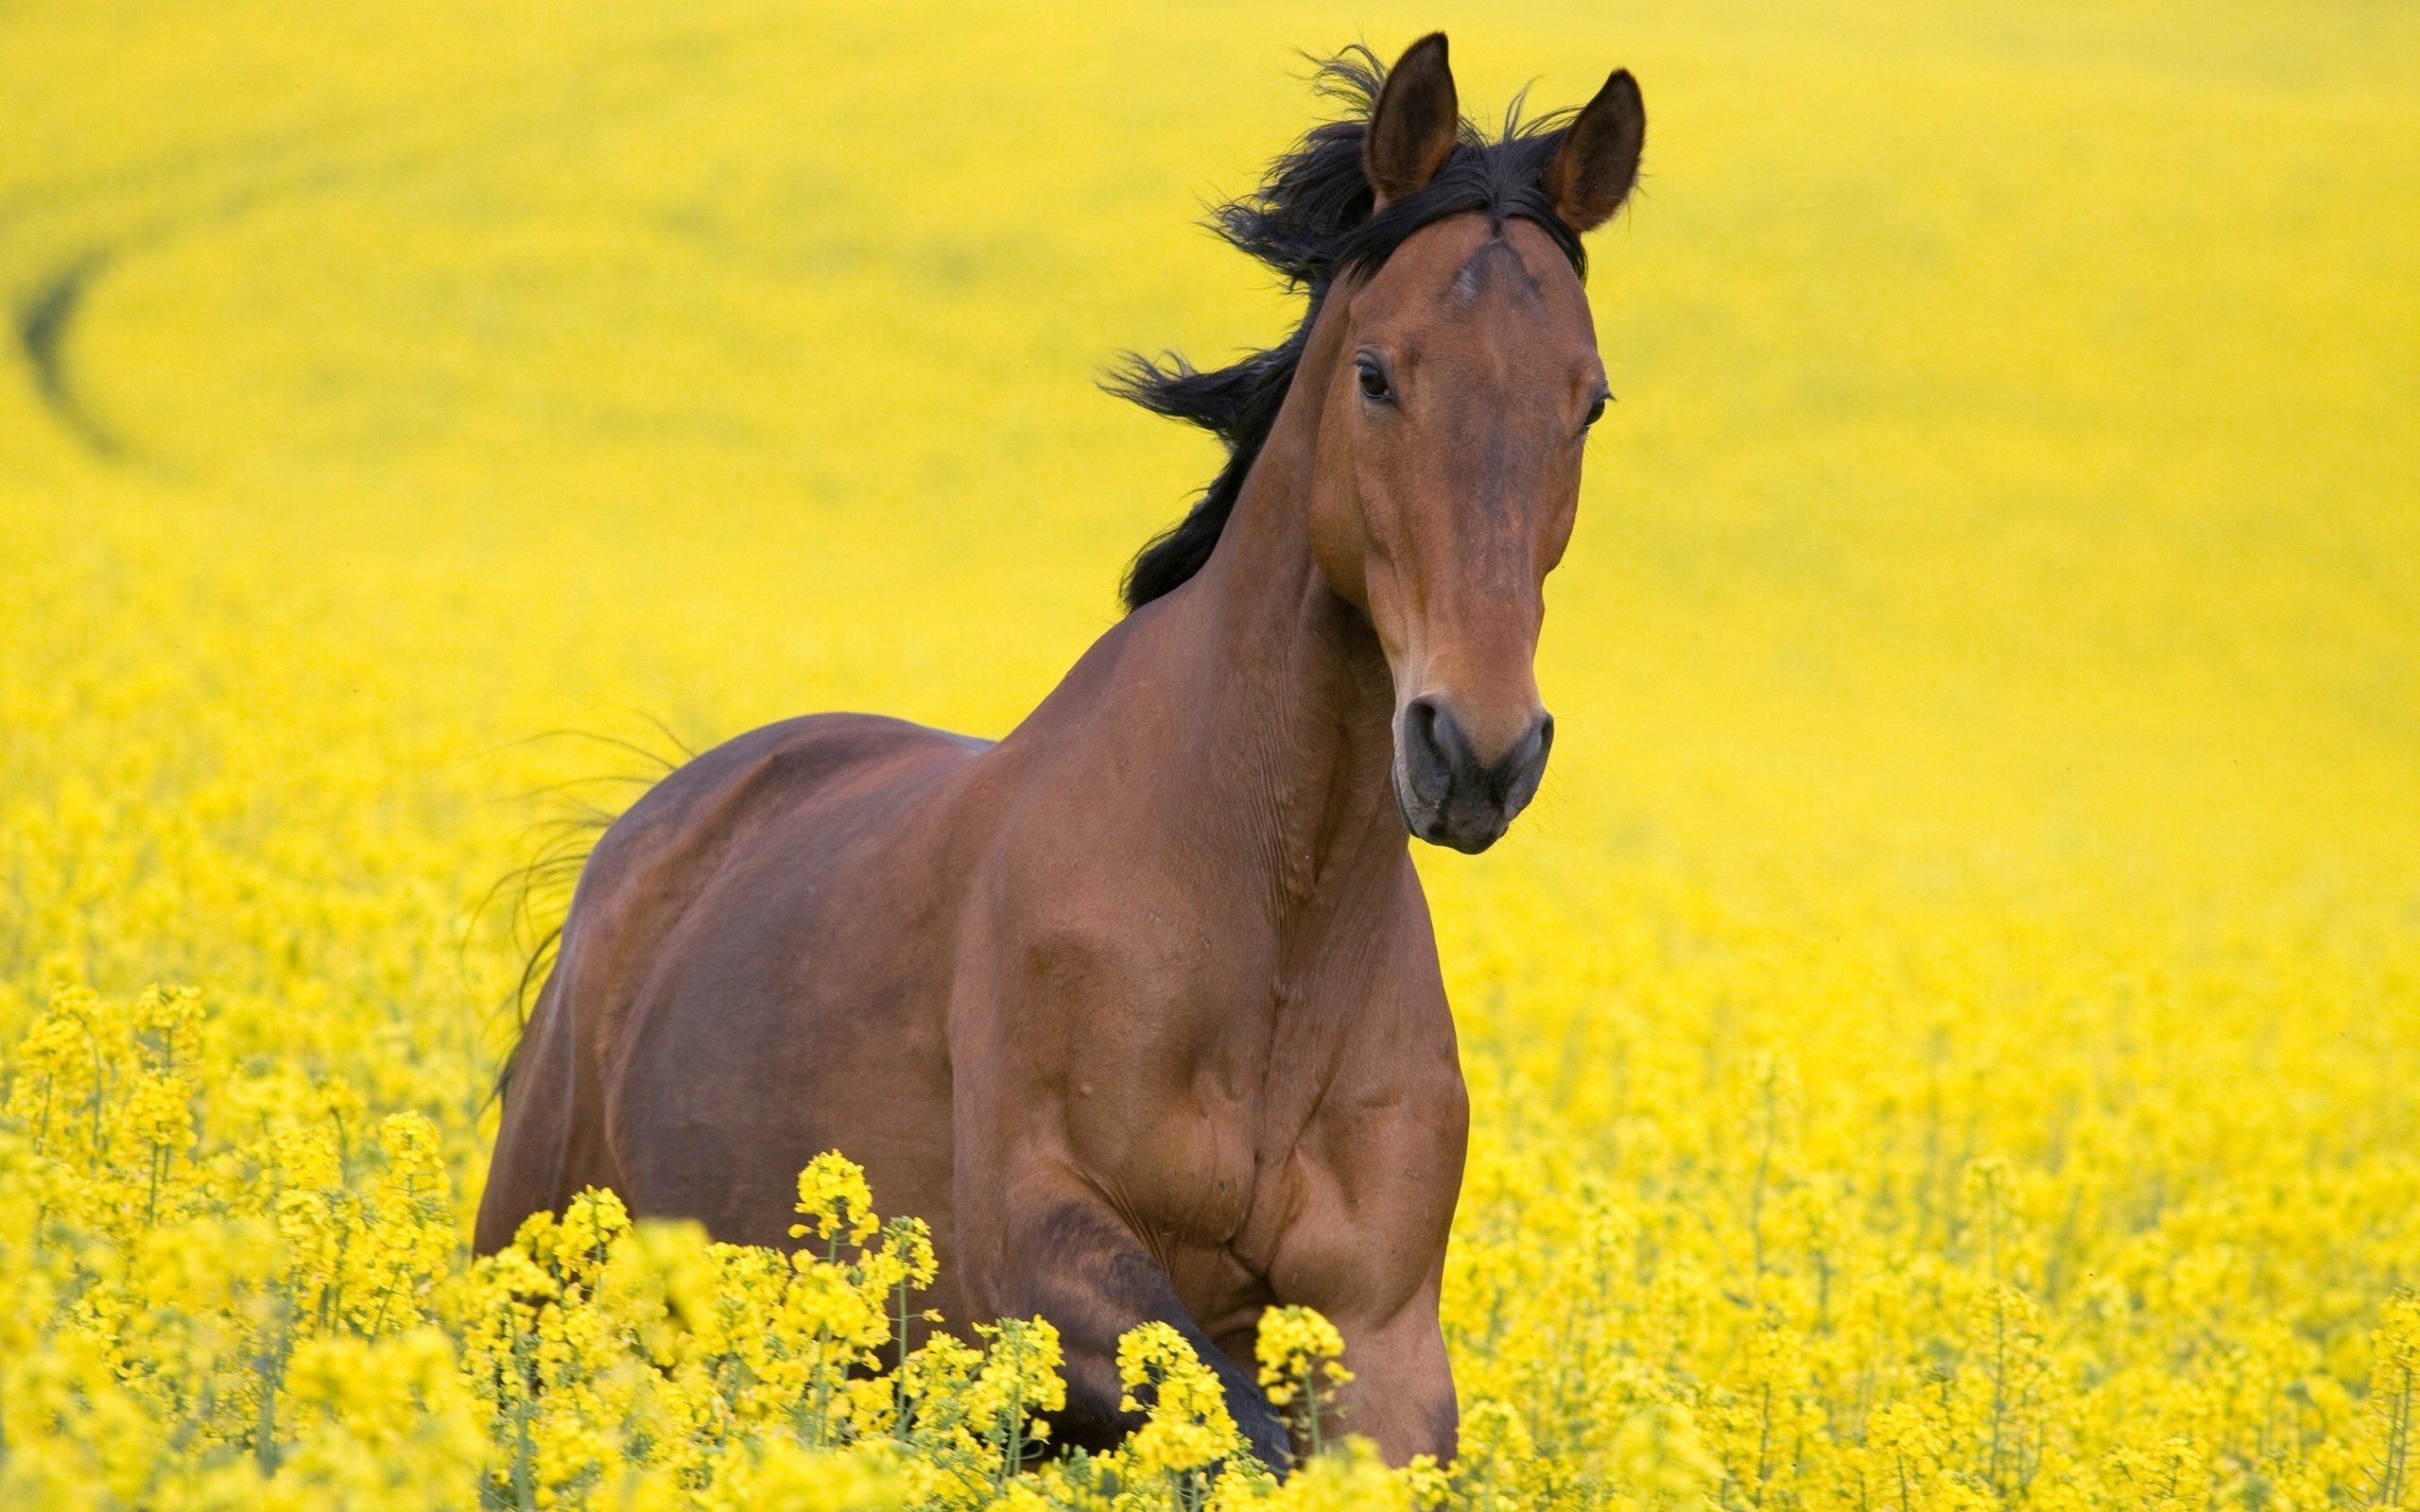 Great Wallpaper Horse Beauty - 8453e5d82fa99f7888bf1016c37151a1  Collection_904640.jpg